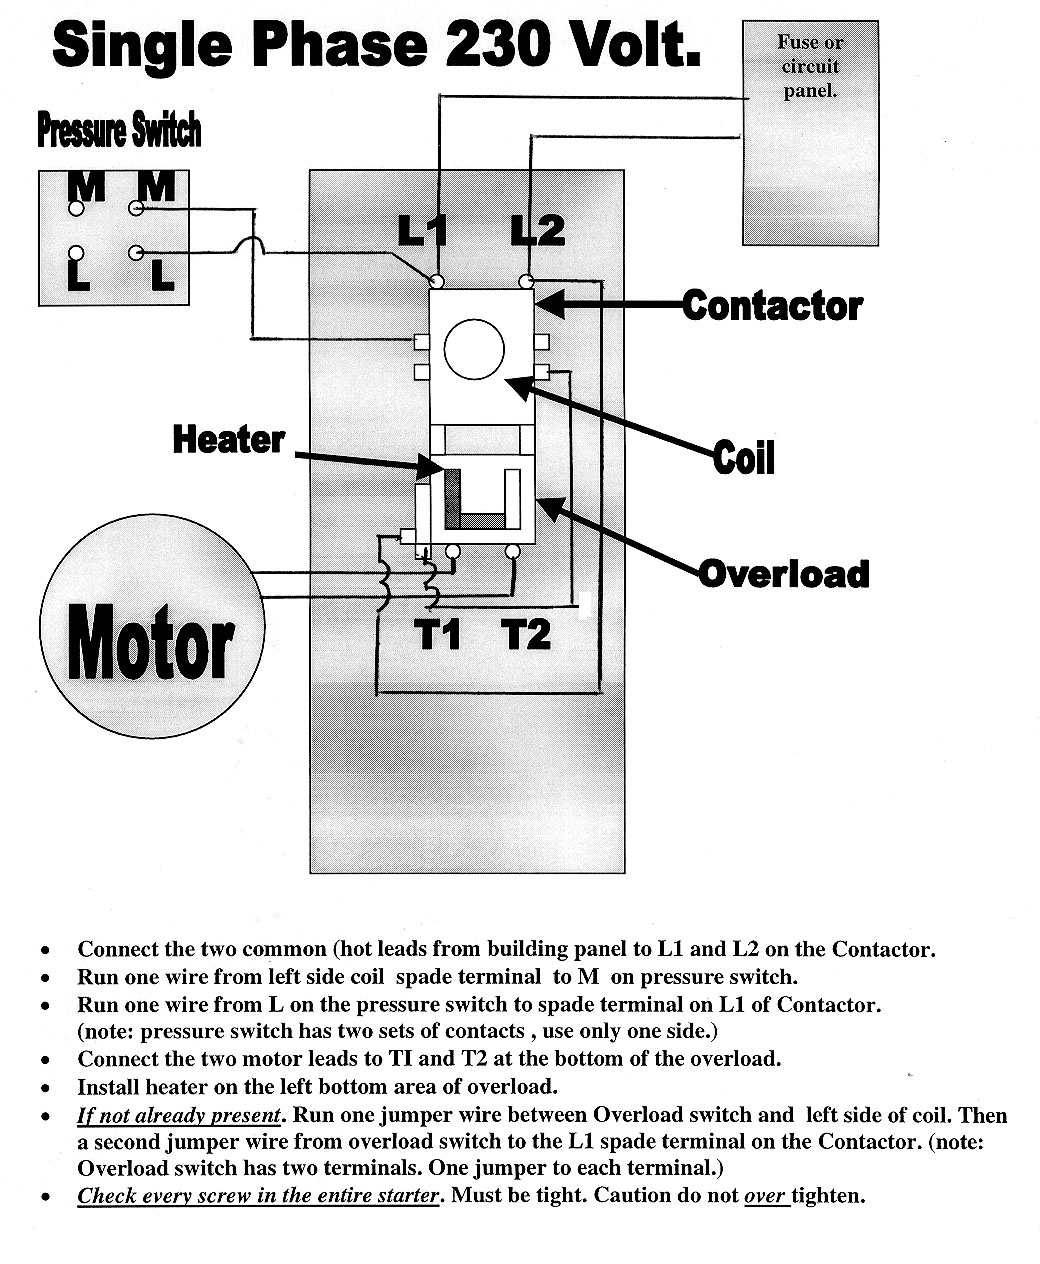 magnetic switch wiring diagram Download-Weg Motor Capacitor Wiring Diagrams Schematics and Baldor Diagram In Magnetic Starter Diagram Beautiful Cutler 8-c